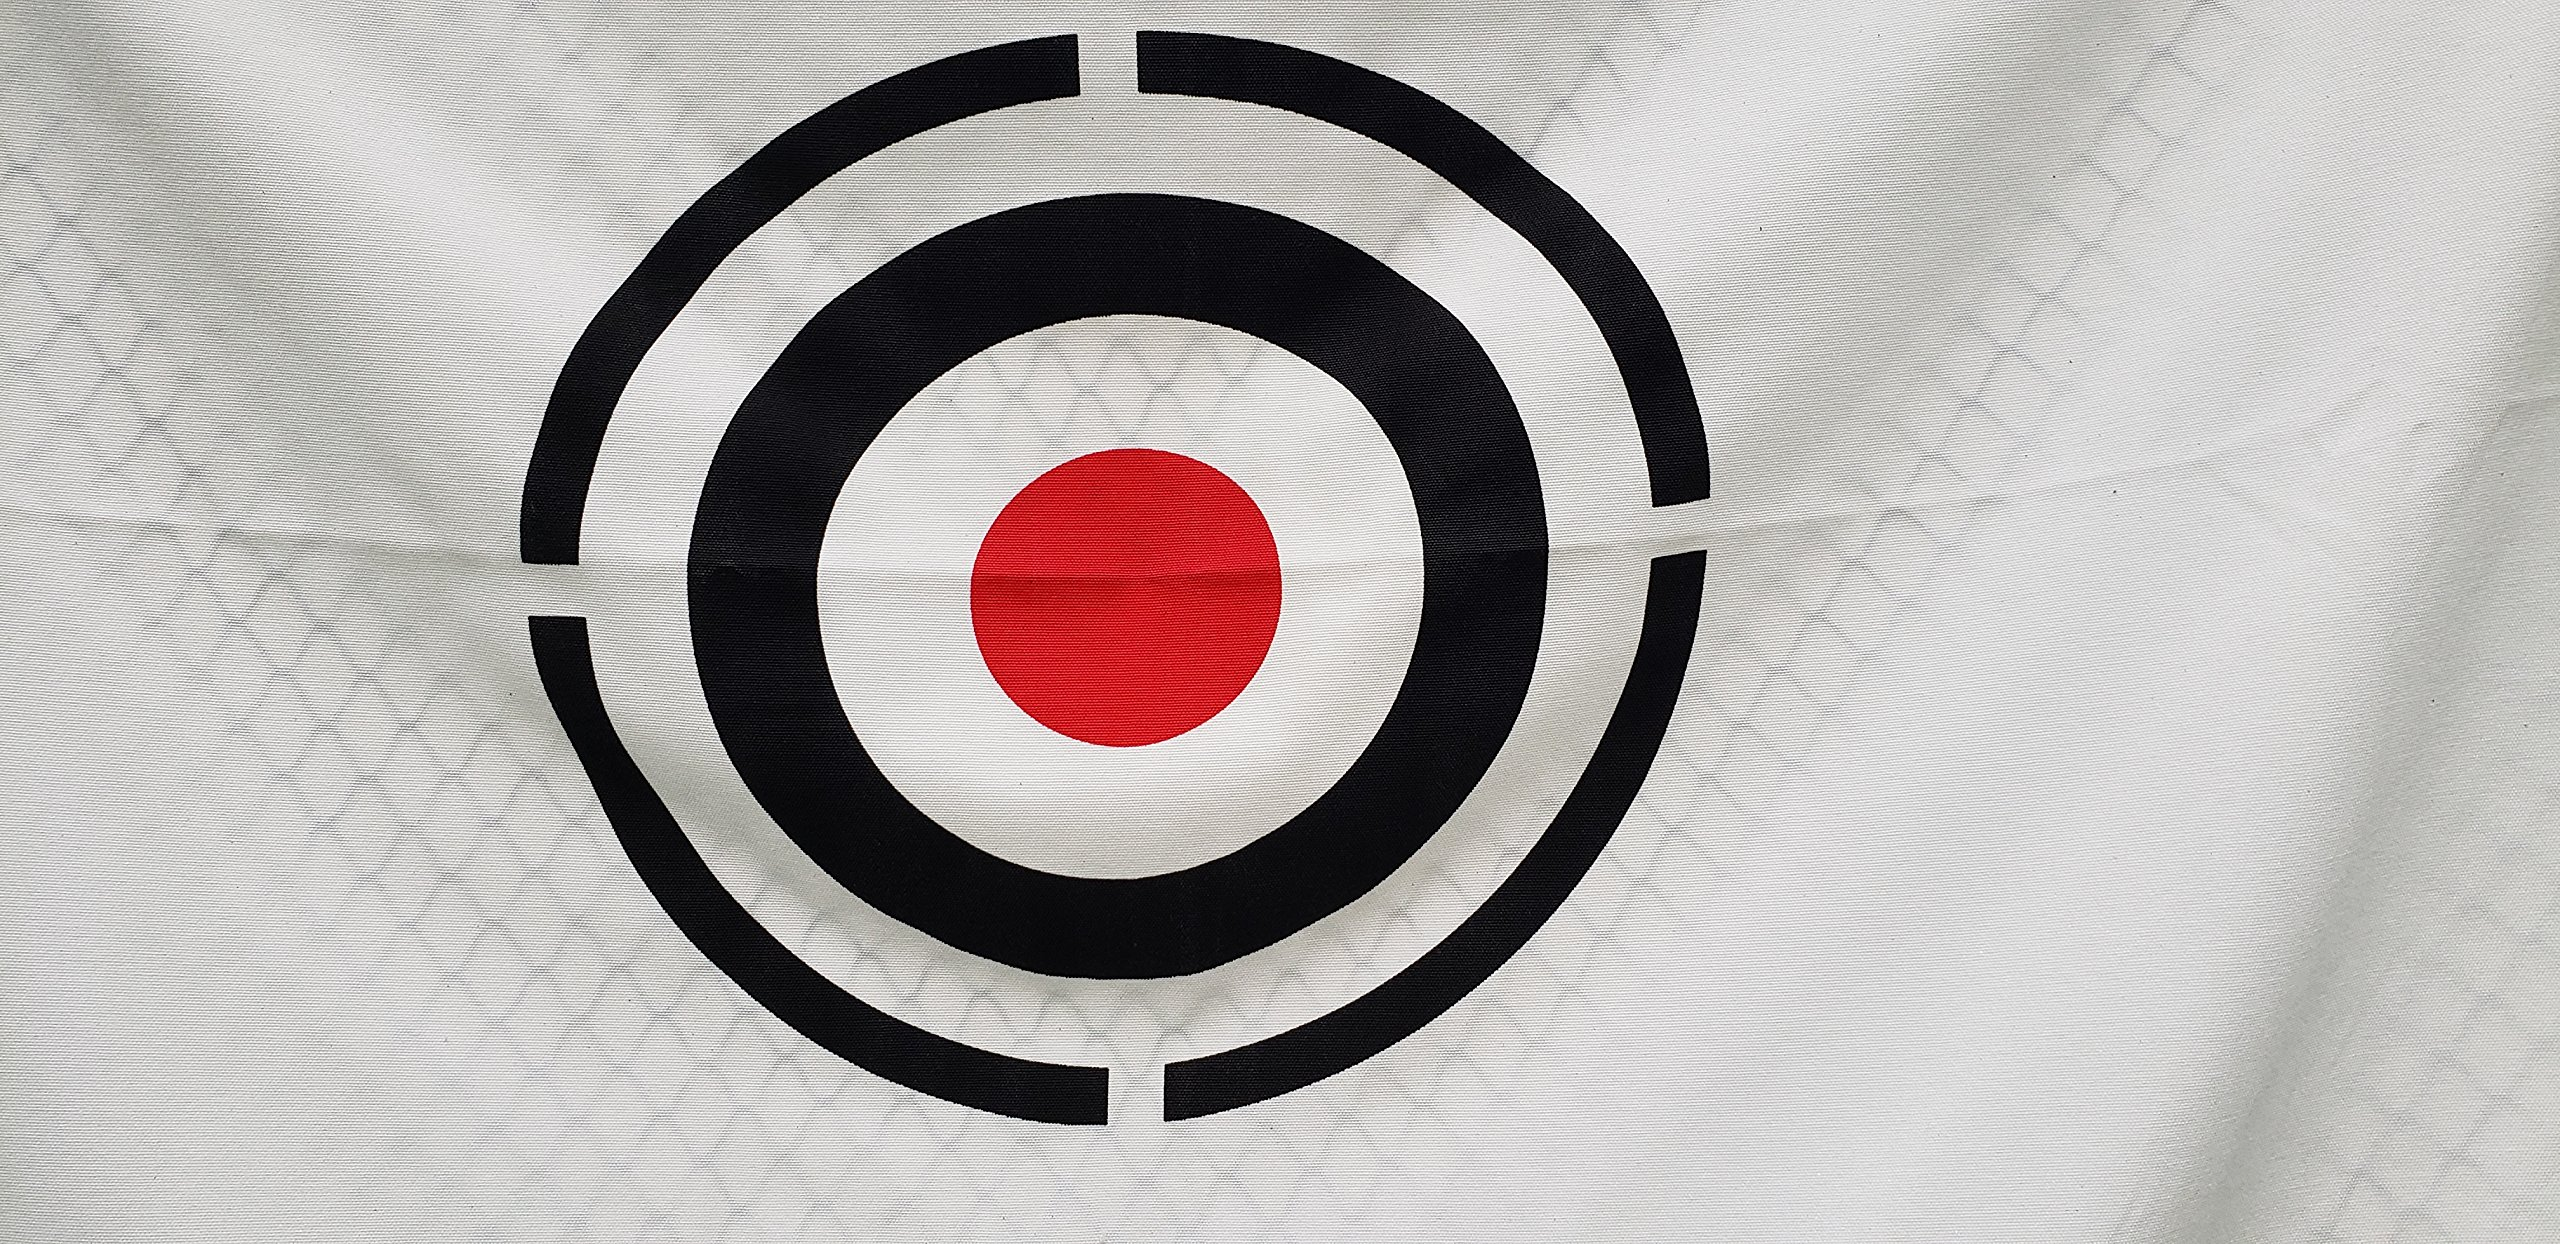 FUNGREEN 1.5Mx1.5M Golf Hitting Target Cloth for Golf Practice Indoor Training Outdoor Court Hitting Cloth Golf Accessories by FUNGREEN (Image #7)